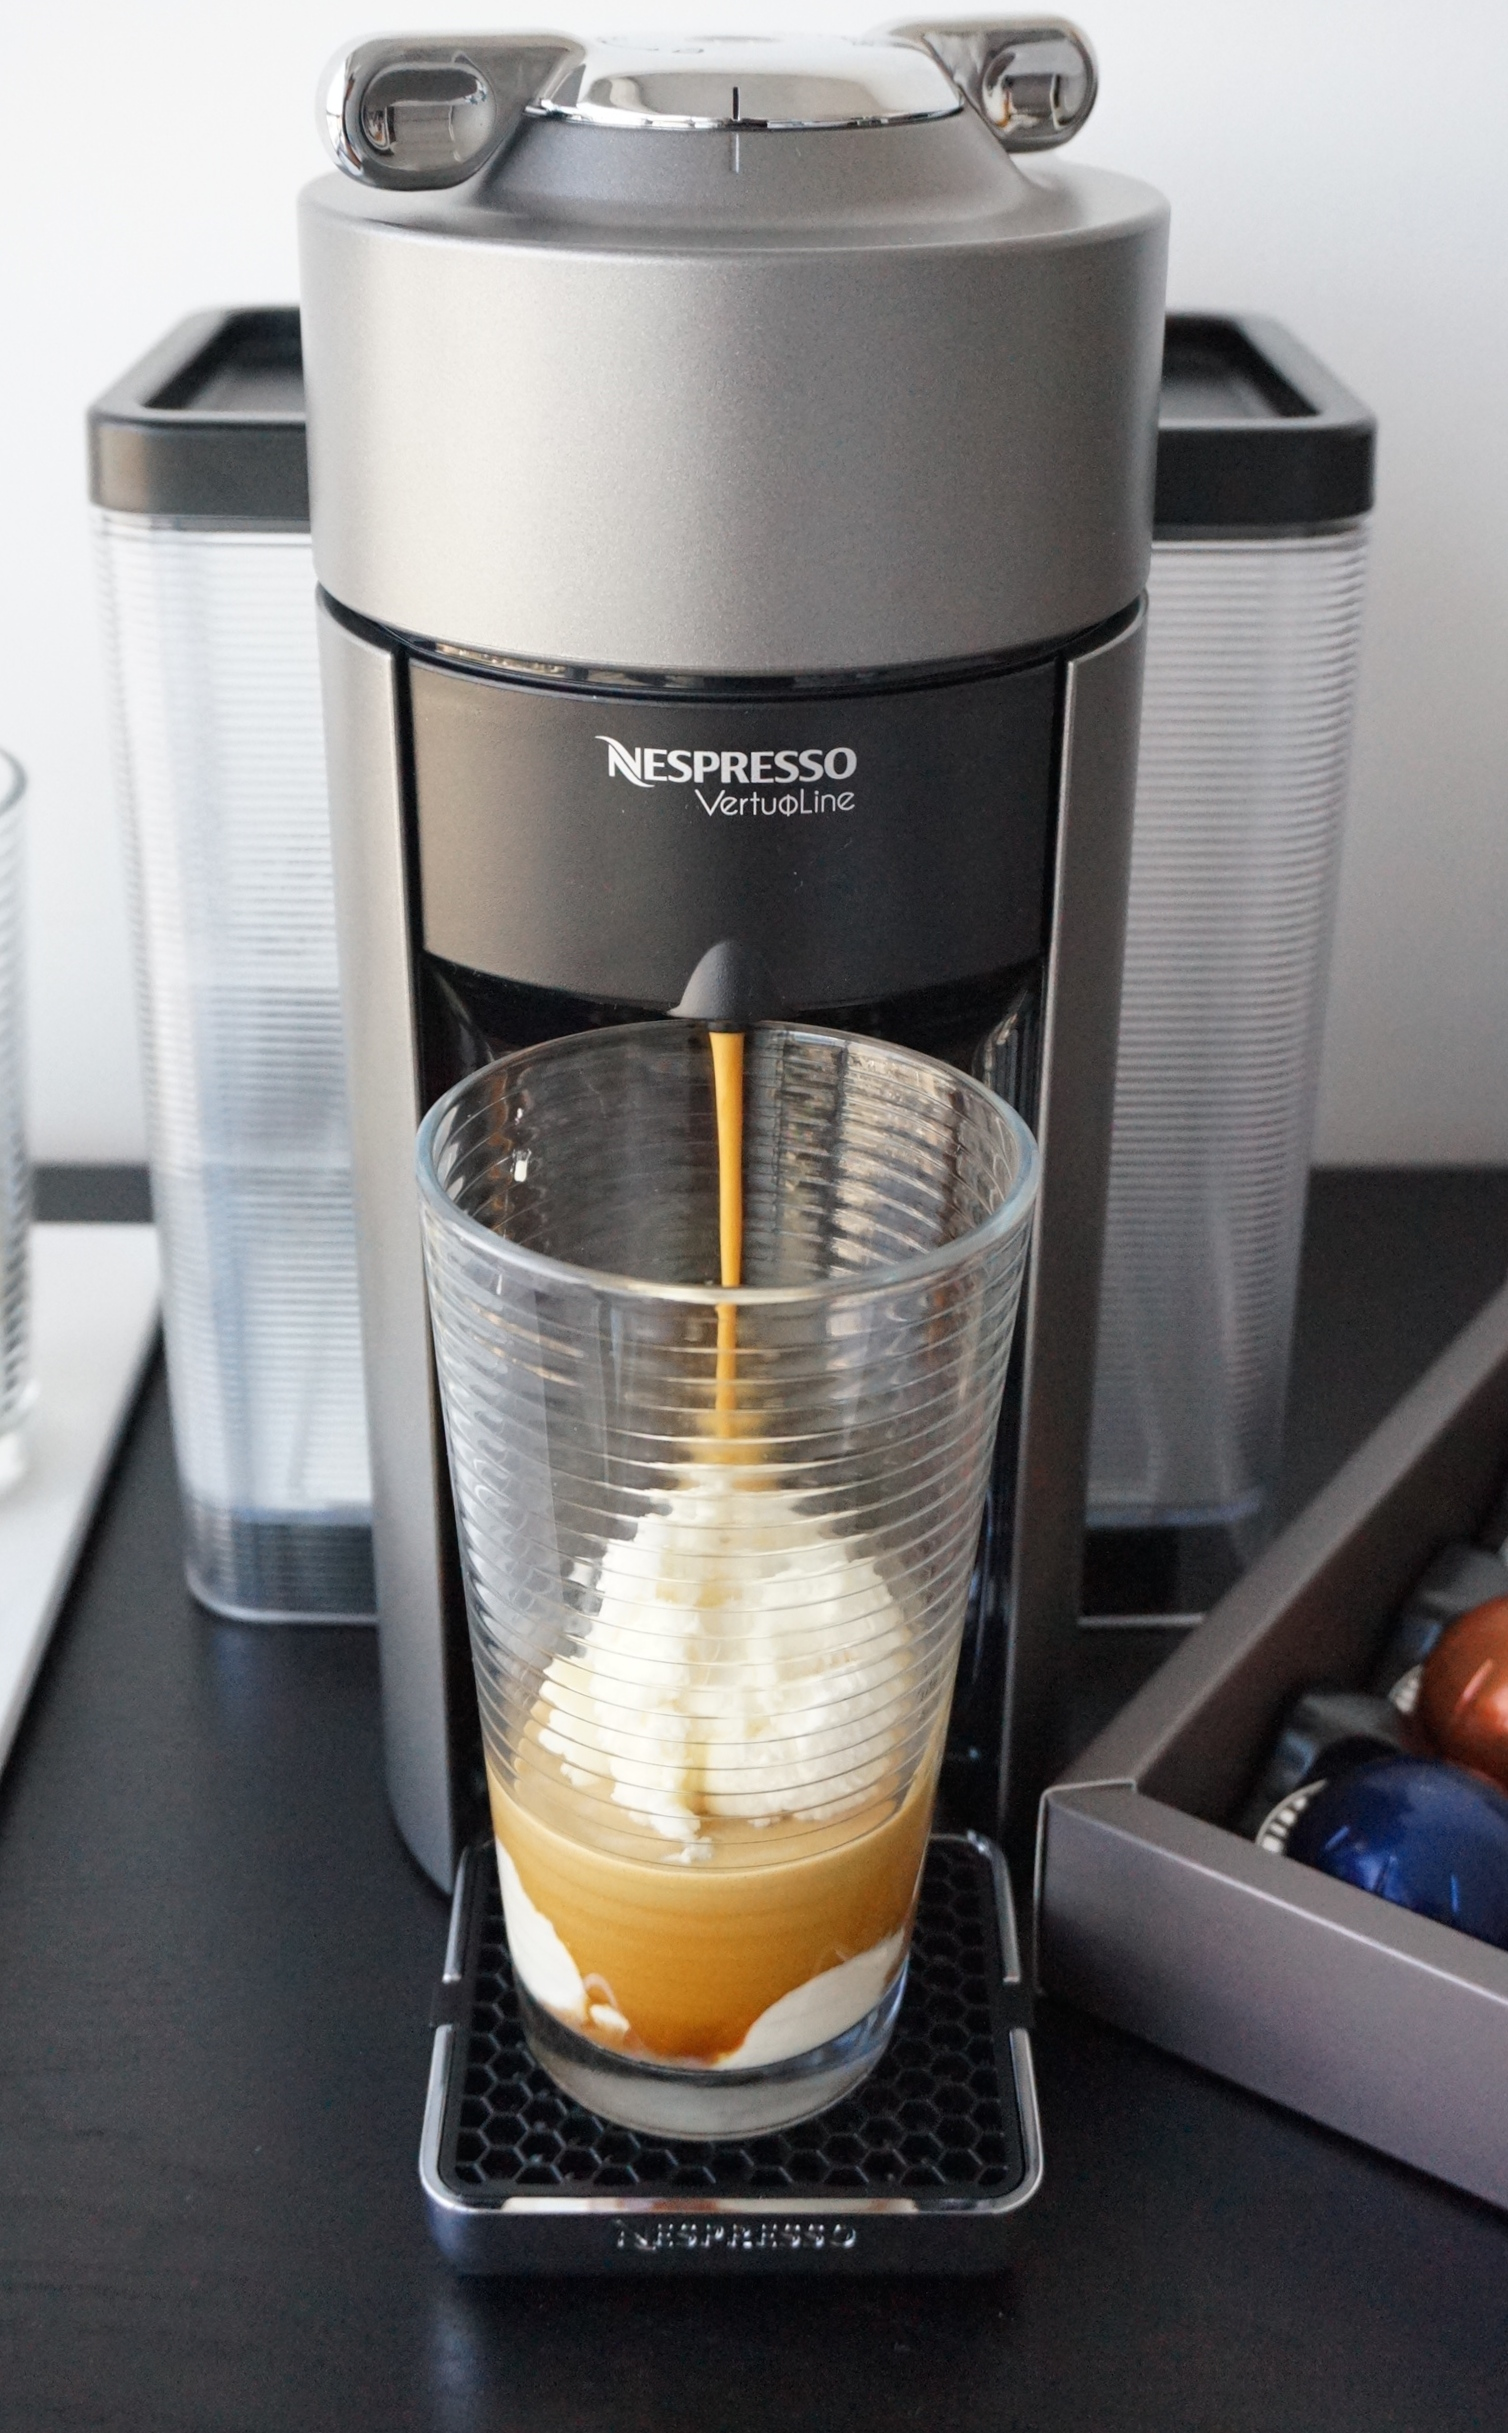 Nespresso Iced Coffee Recipe  Girls Of TO -> Nespresso Iced Coffee